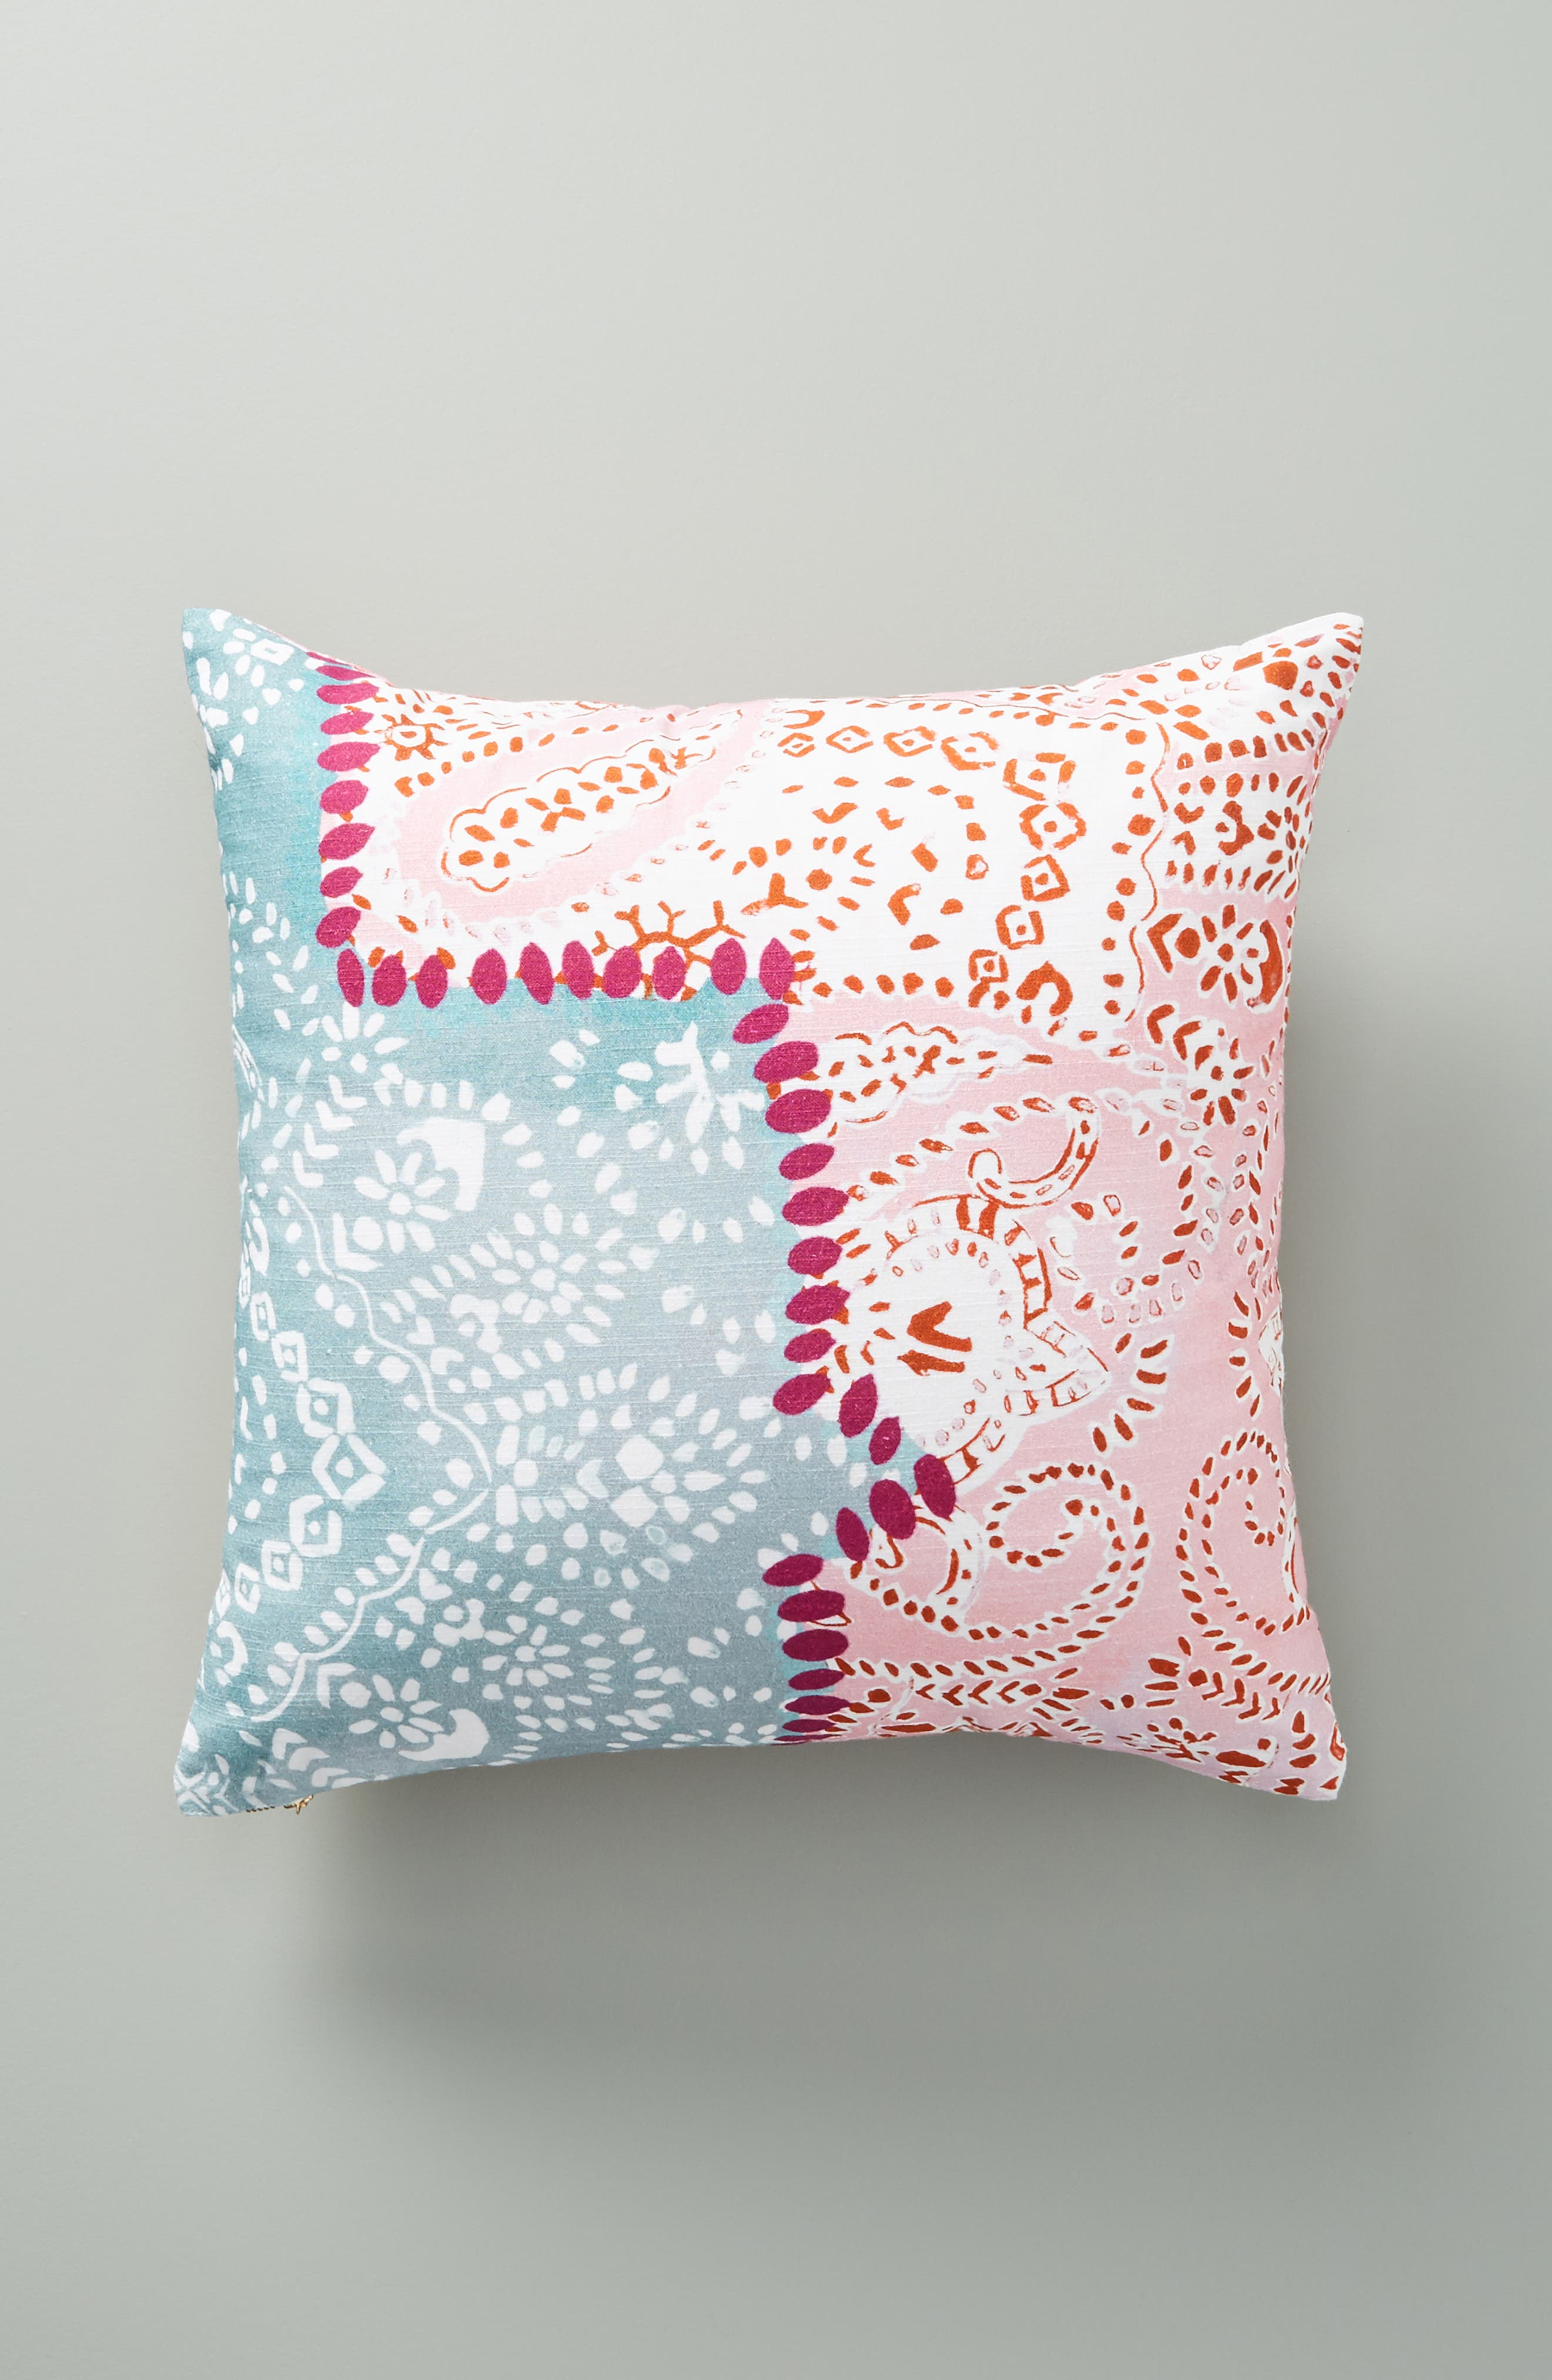 Piper Accent Pillow,                             Alternate thumbnail 2, color,                             650